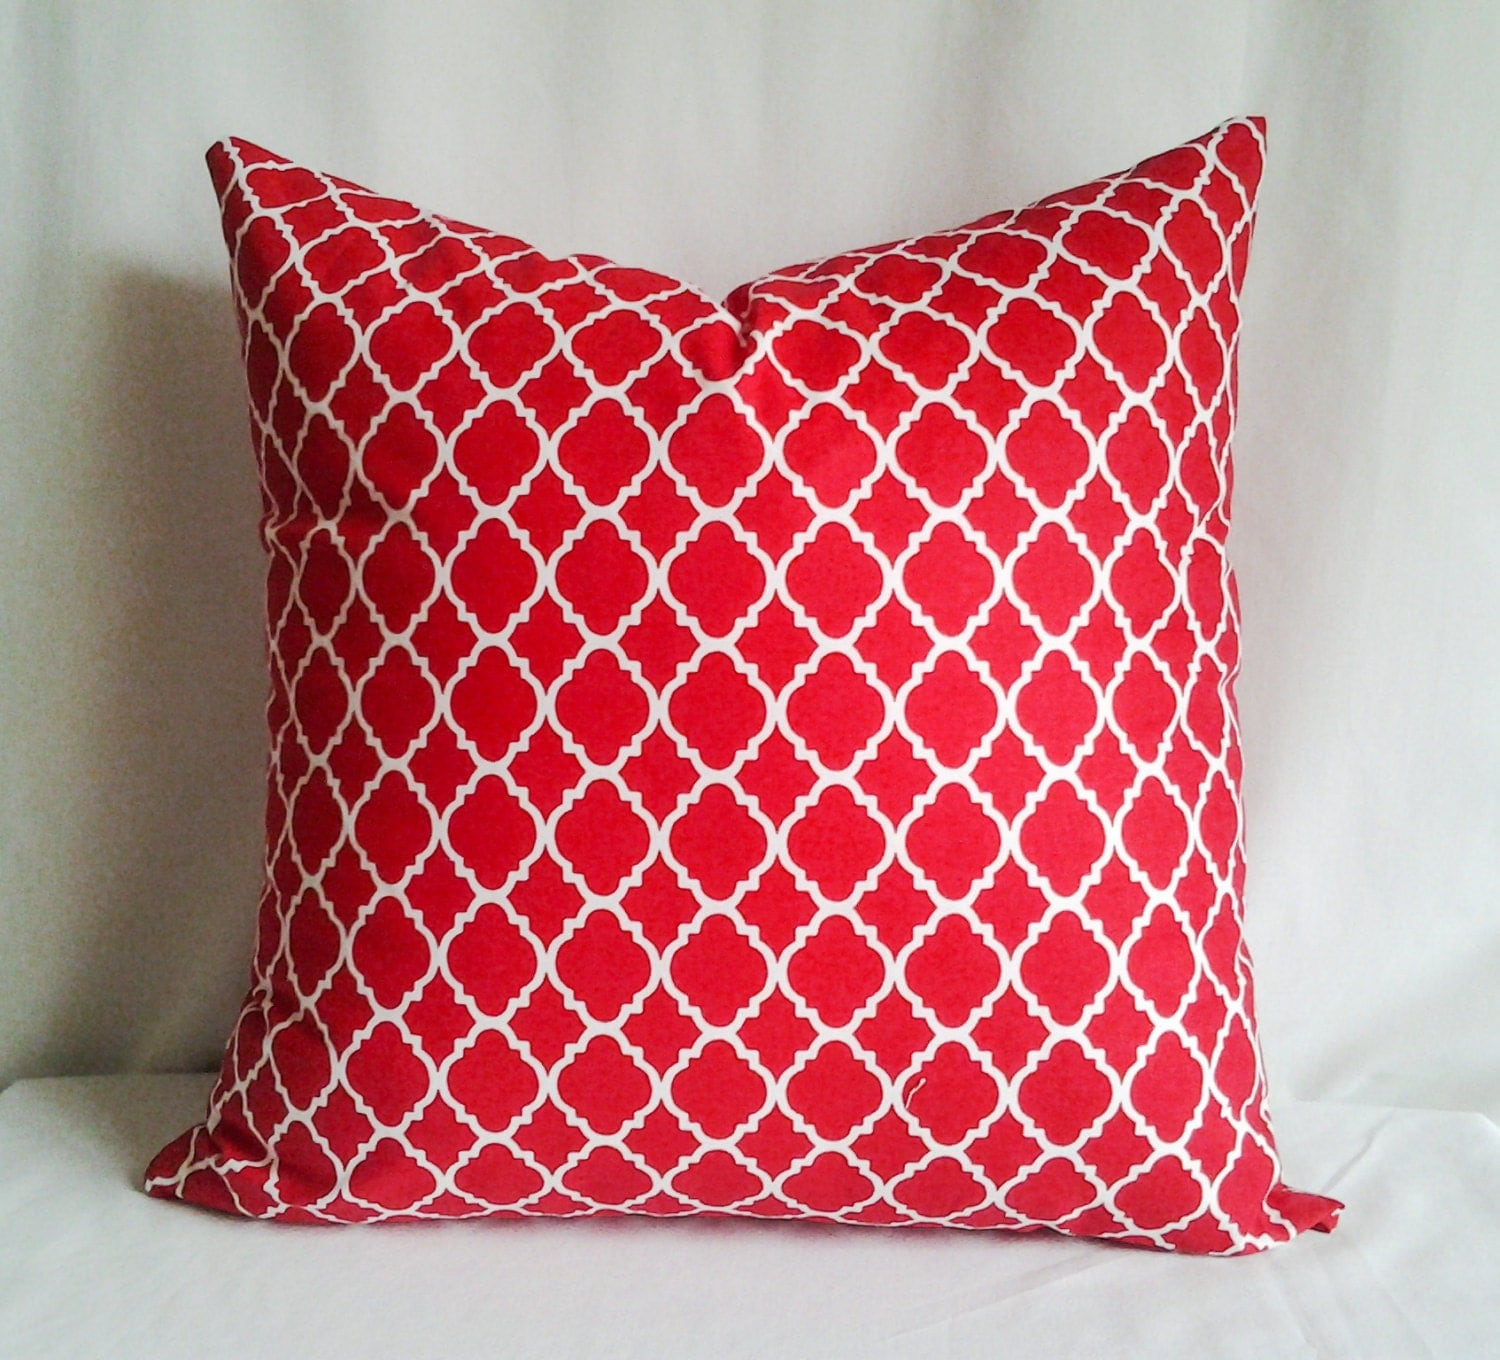 Red and White Pillow Cover 18x18 Pillow Cover Decorative